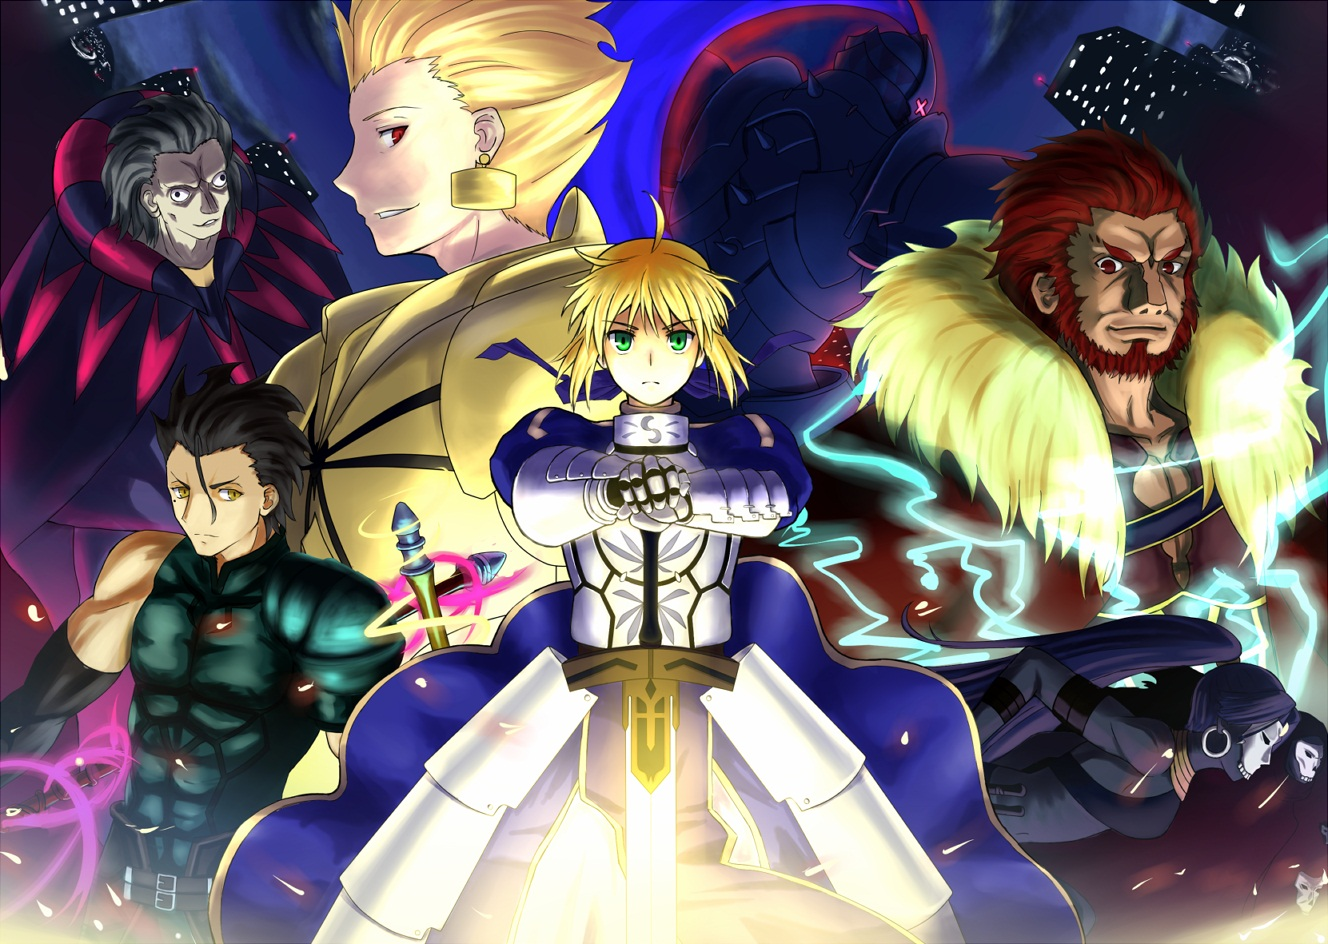 http://1.bp.blogspot.com/-OJ0PeGPwmaU/T7WHg93tlqI/AAAAAAAADtM/ykKwJLOlRZs/s1600/Fate+Zero+Wallpaper+HD+-+anime+wallpapers+%284%29.jpg